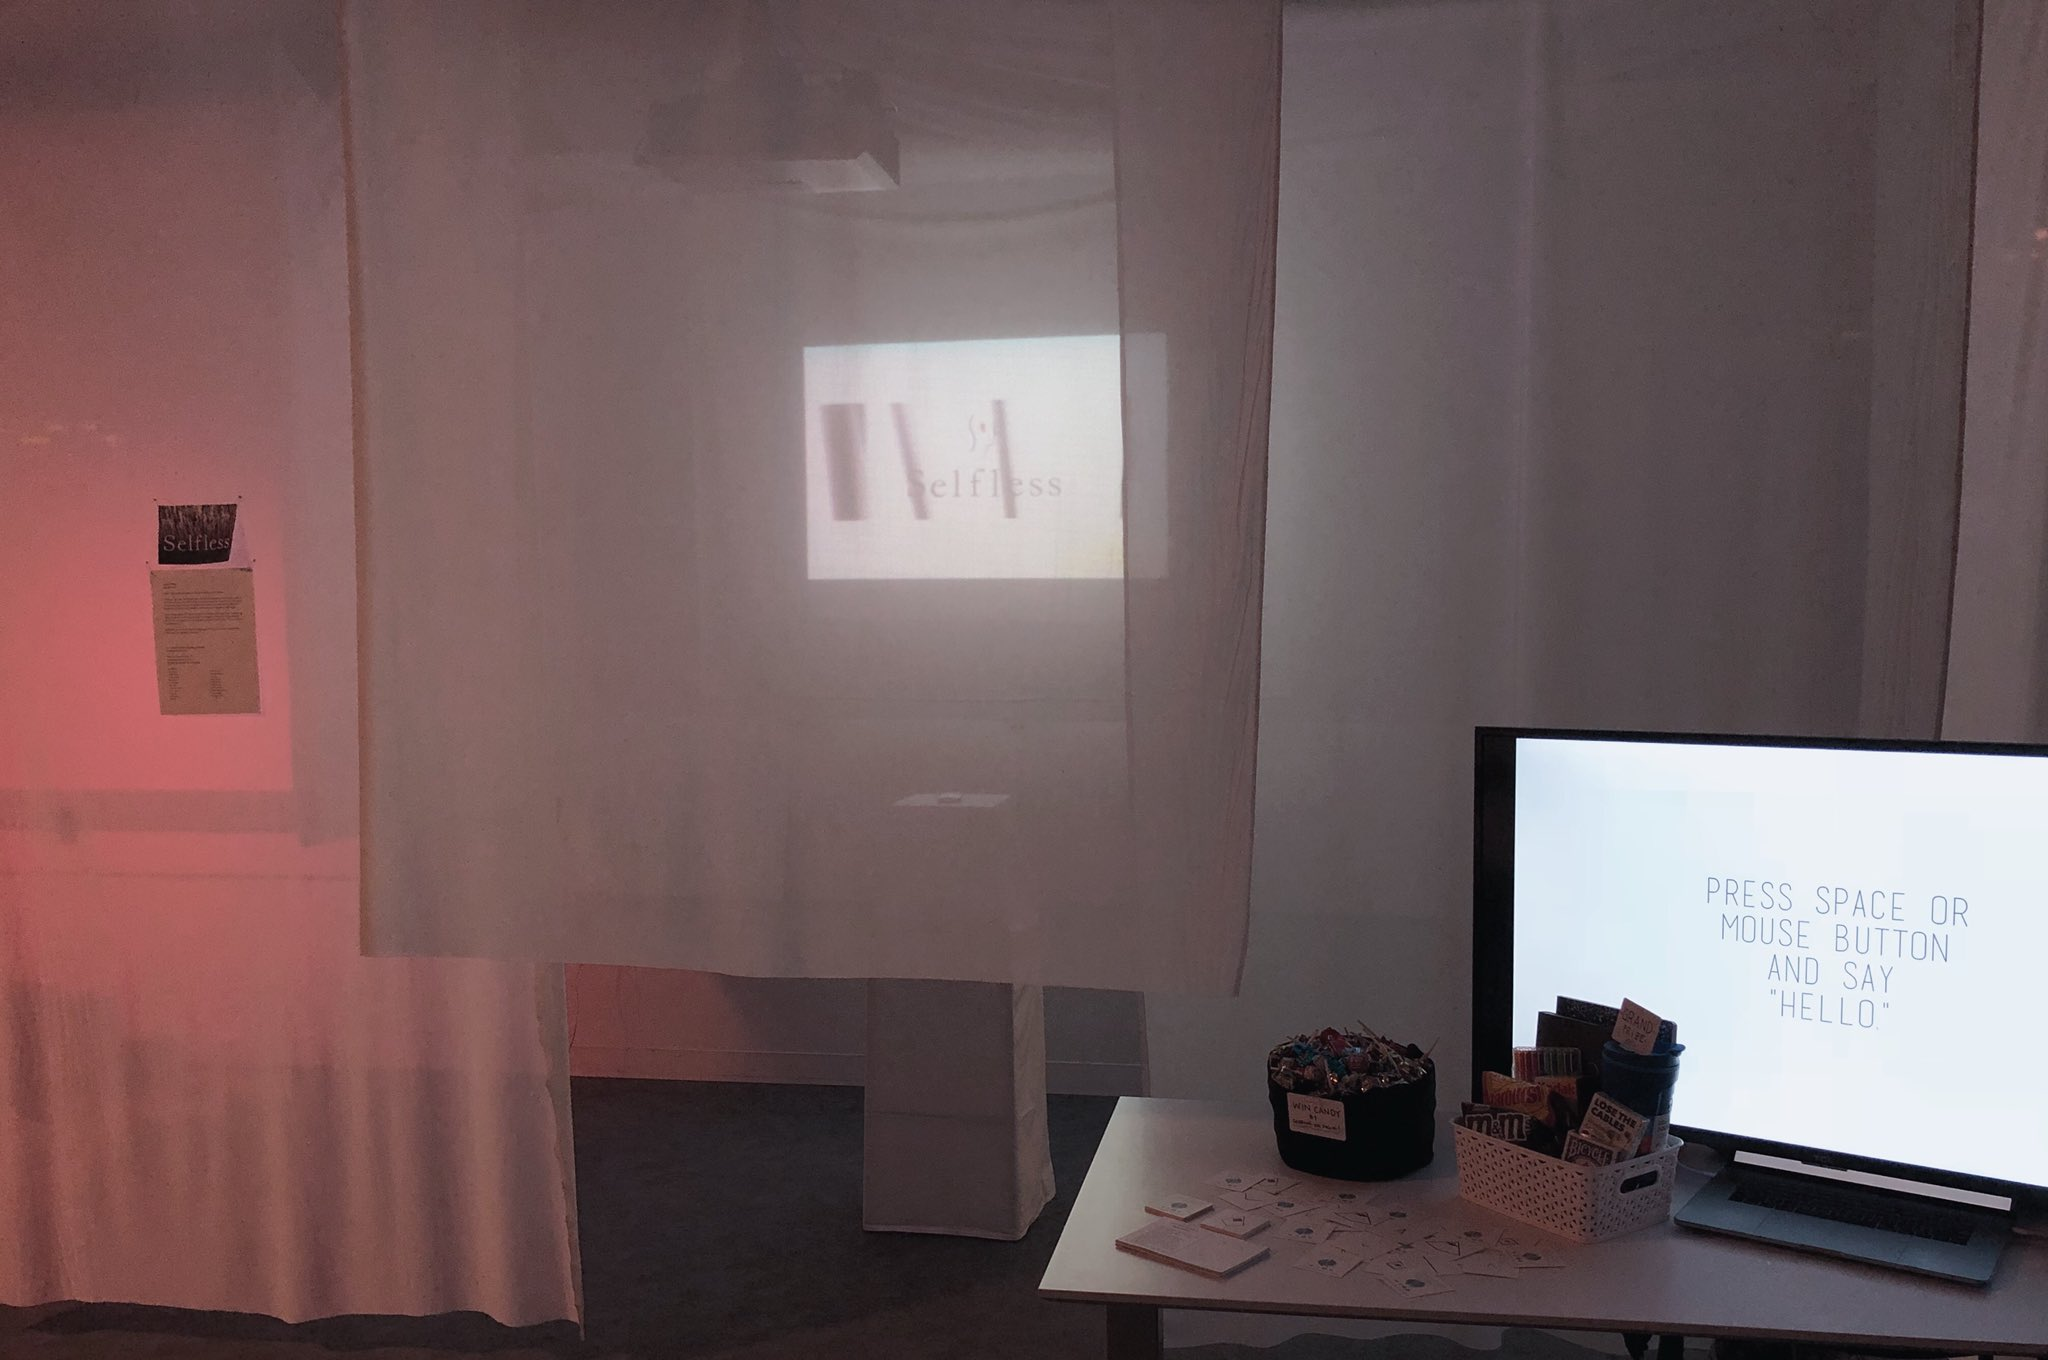 Selfless  debuted at the NYU Game Center End of Year show on May 17, 2018. We created an installation space — an intimate home of translucent cloth, a home halfway from being made.